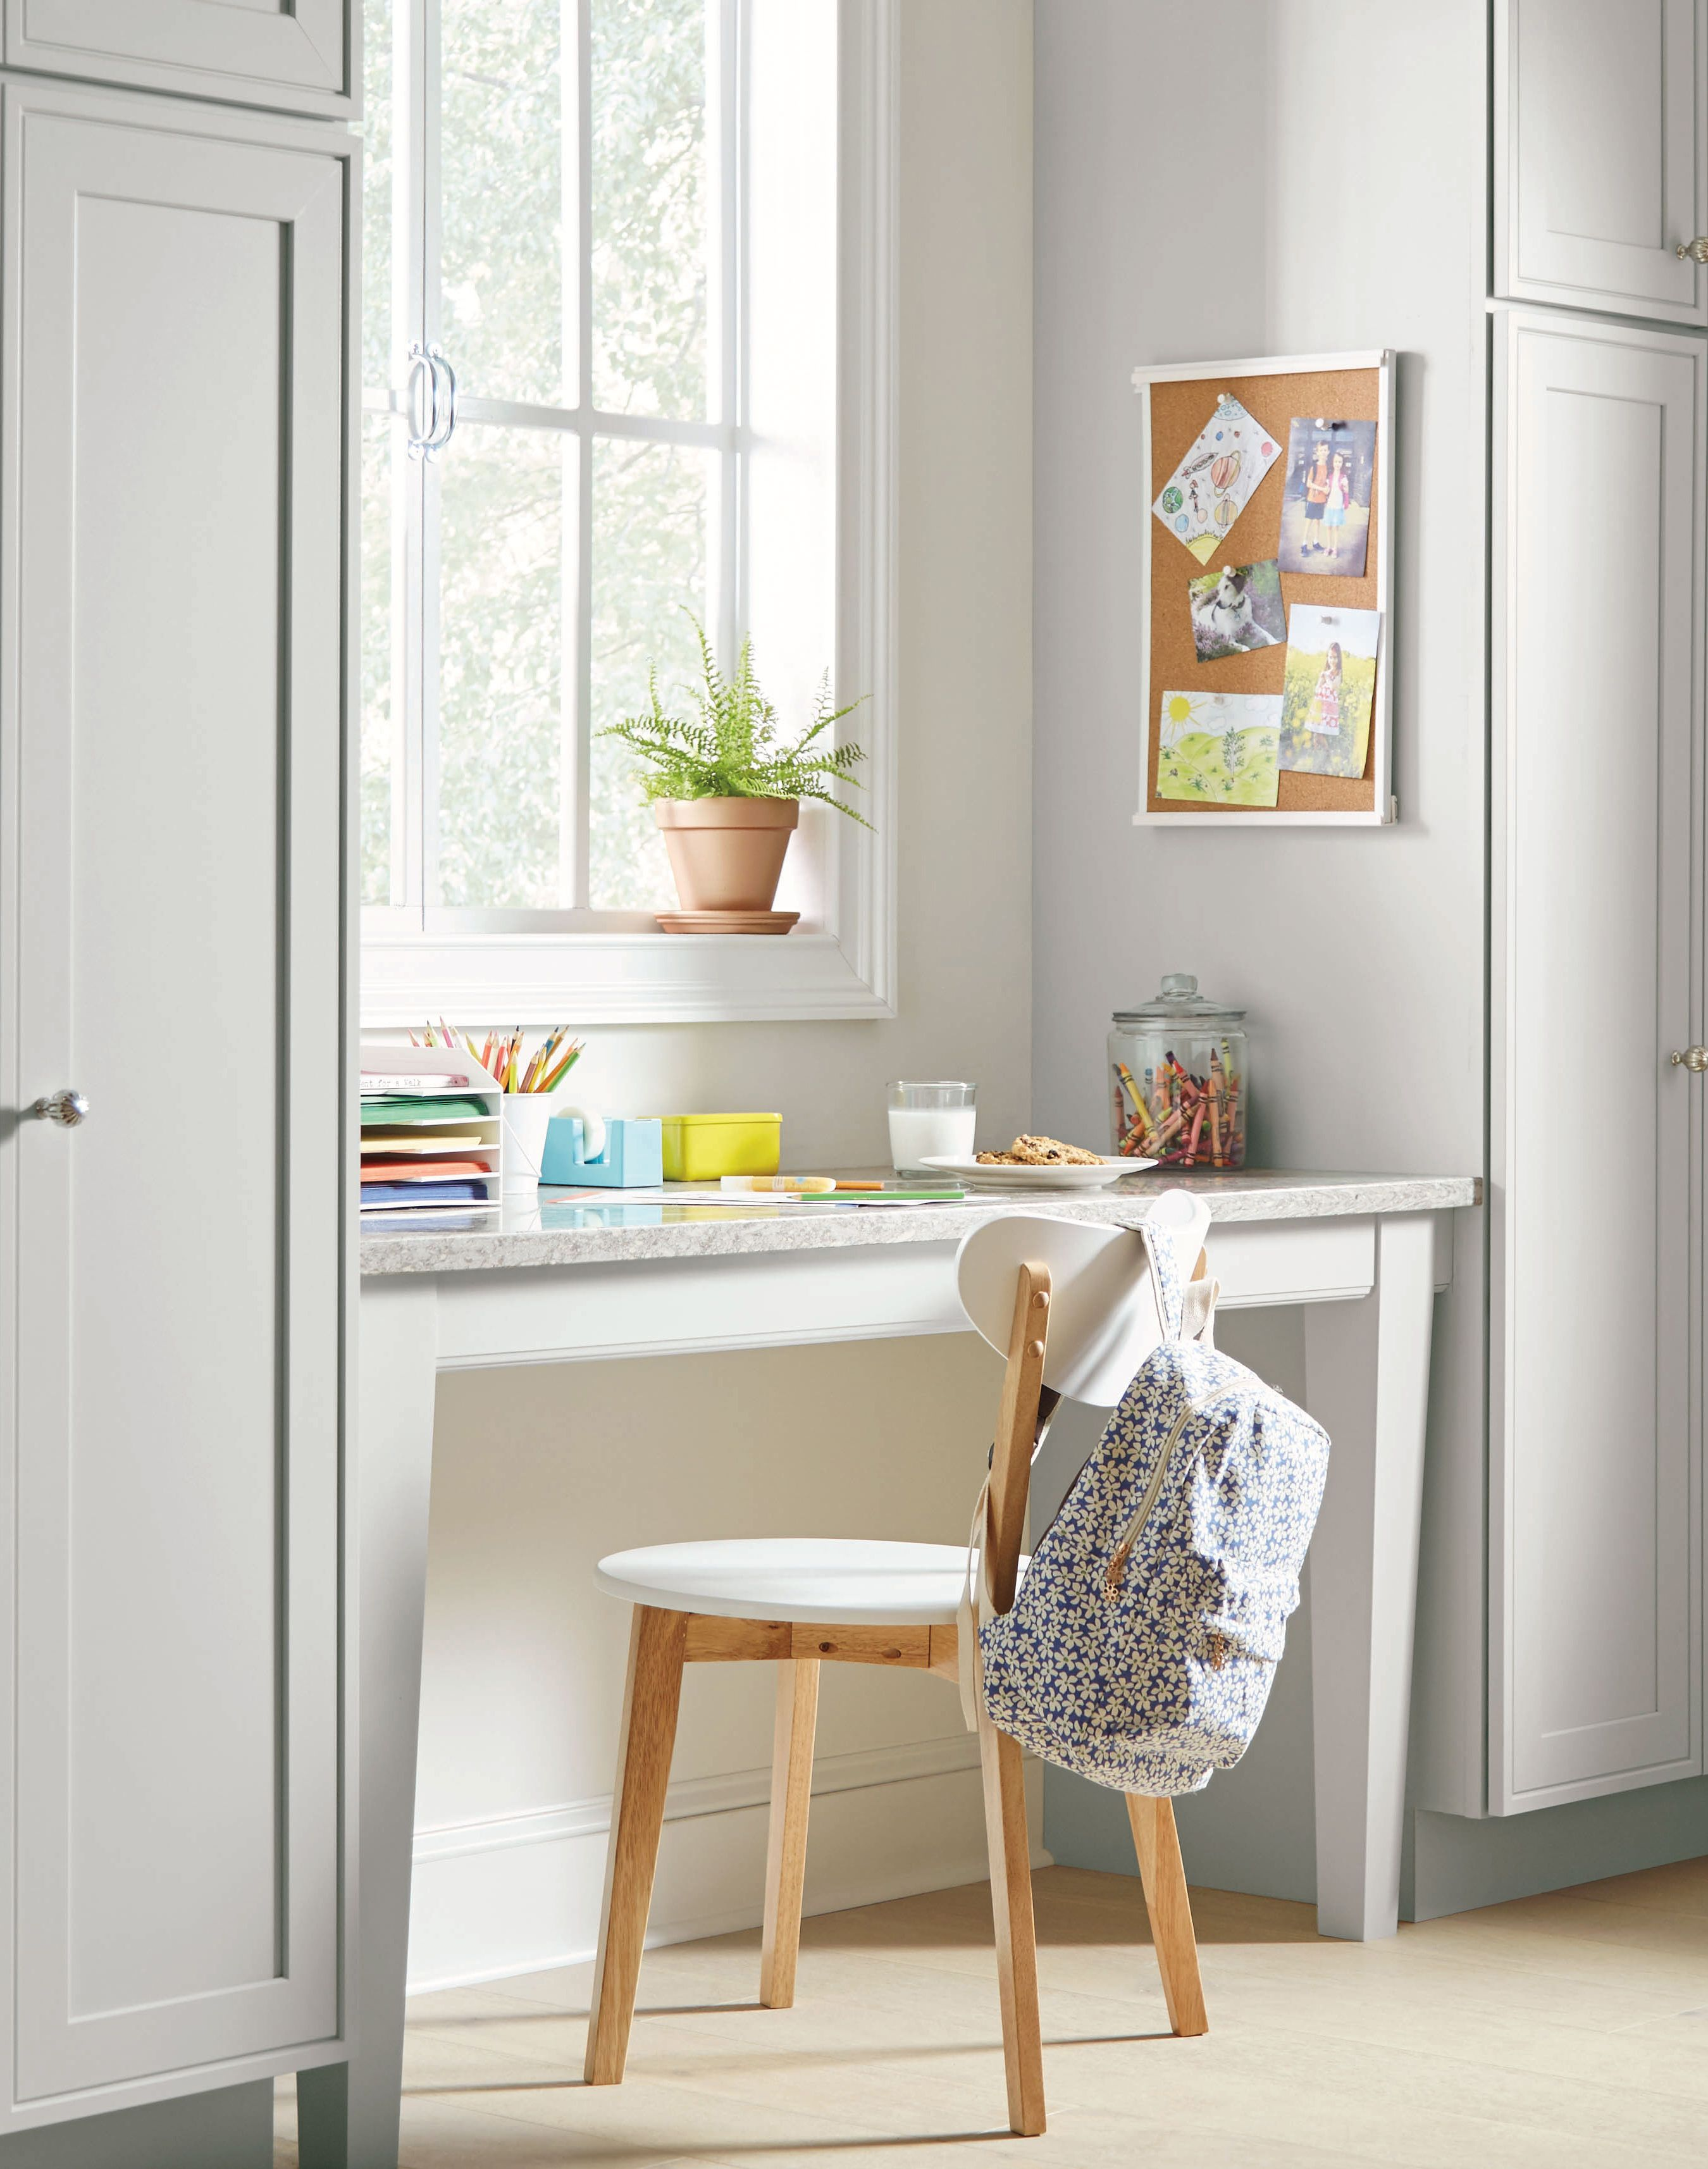 Living Kitchens at the Home Depot | Adolescentes | Pinterest